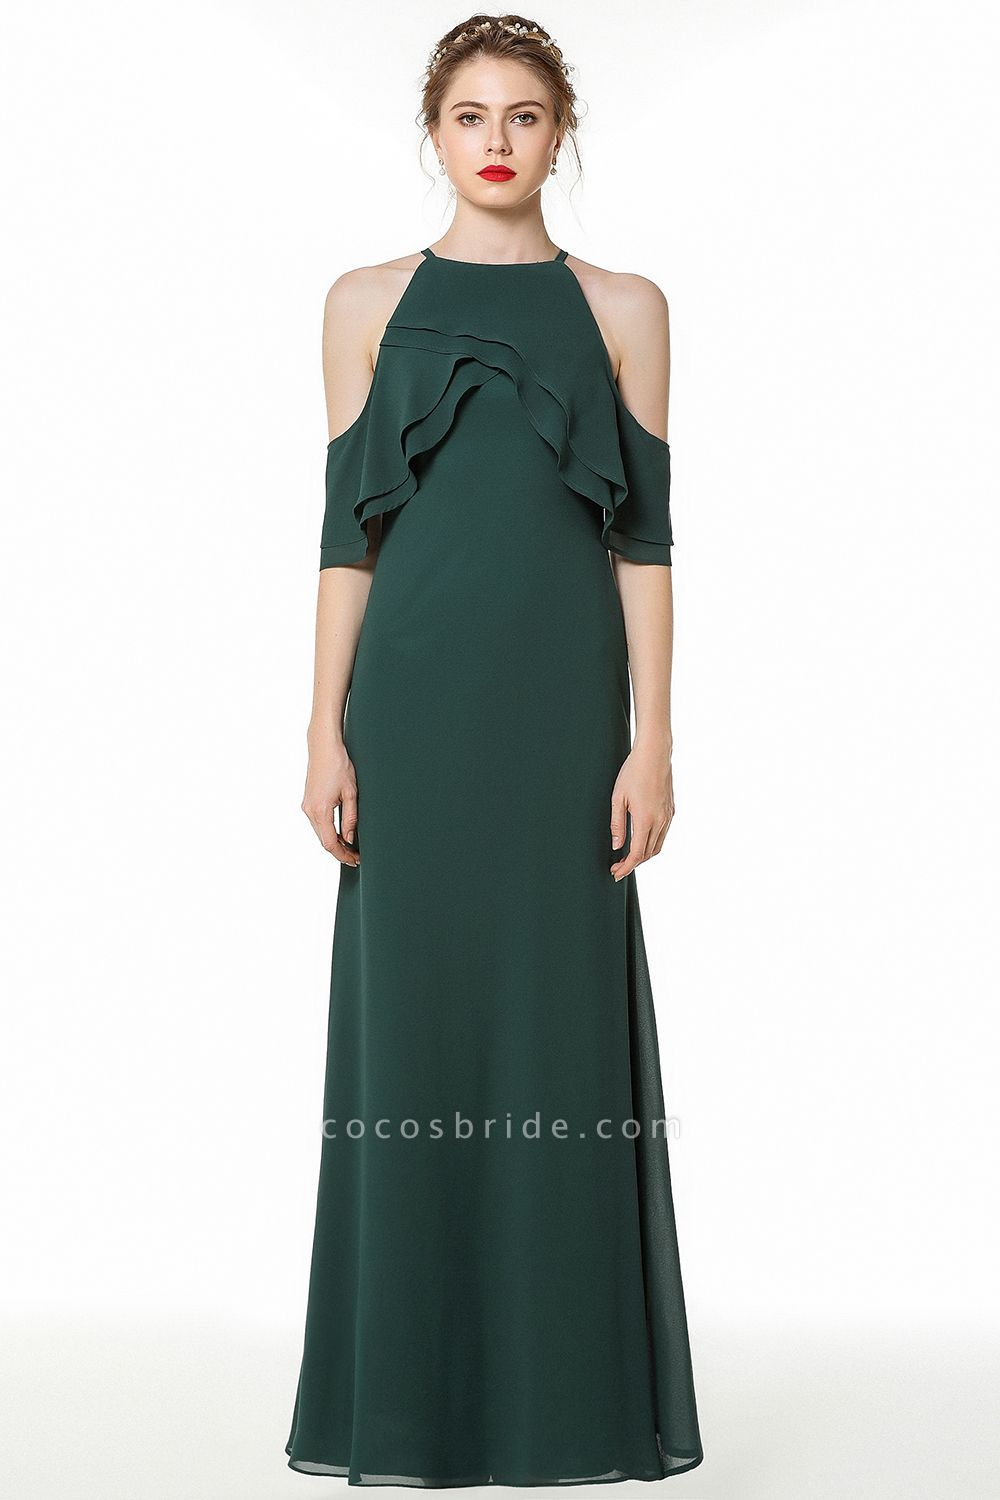 BM0825 Gorgeous Straps Dark Green Floor Length Bridesmaid Dress